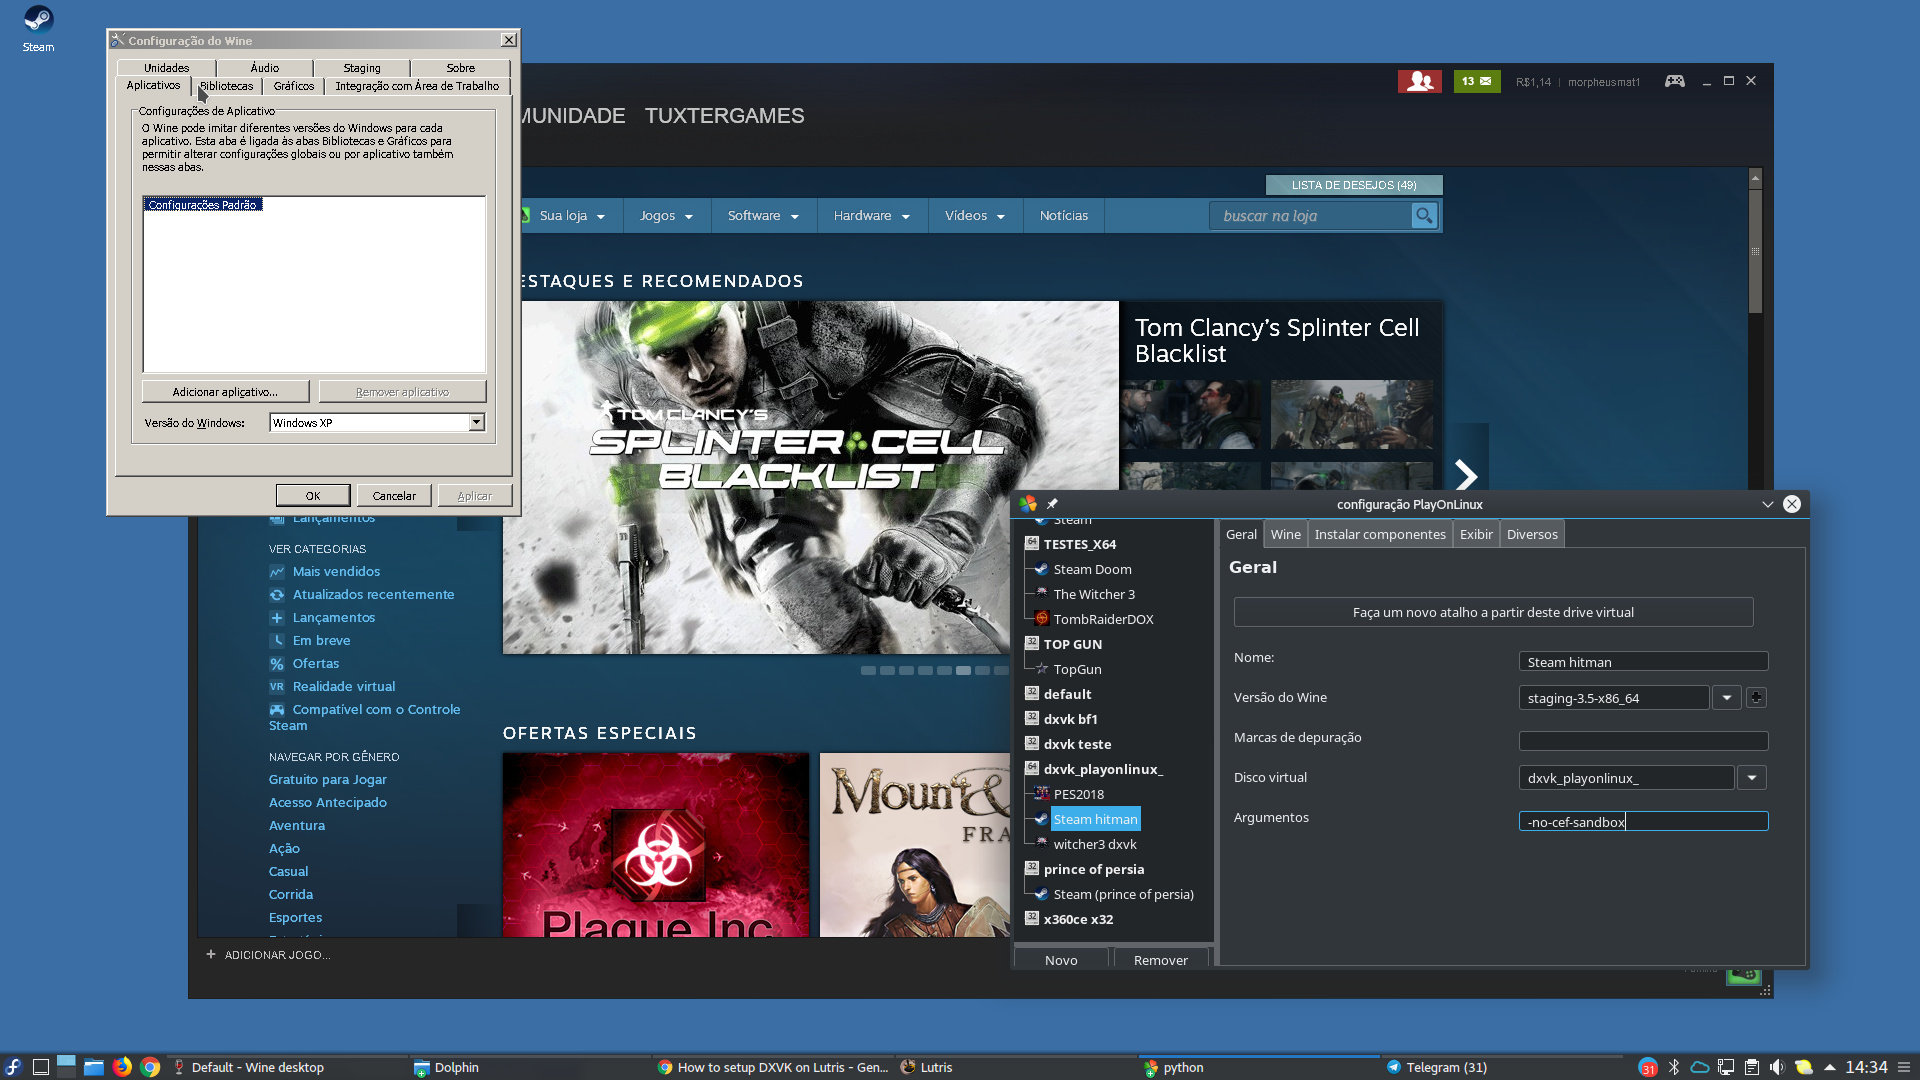 How to setup DXVK on Lutris - General Discussion - Lutris Forums